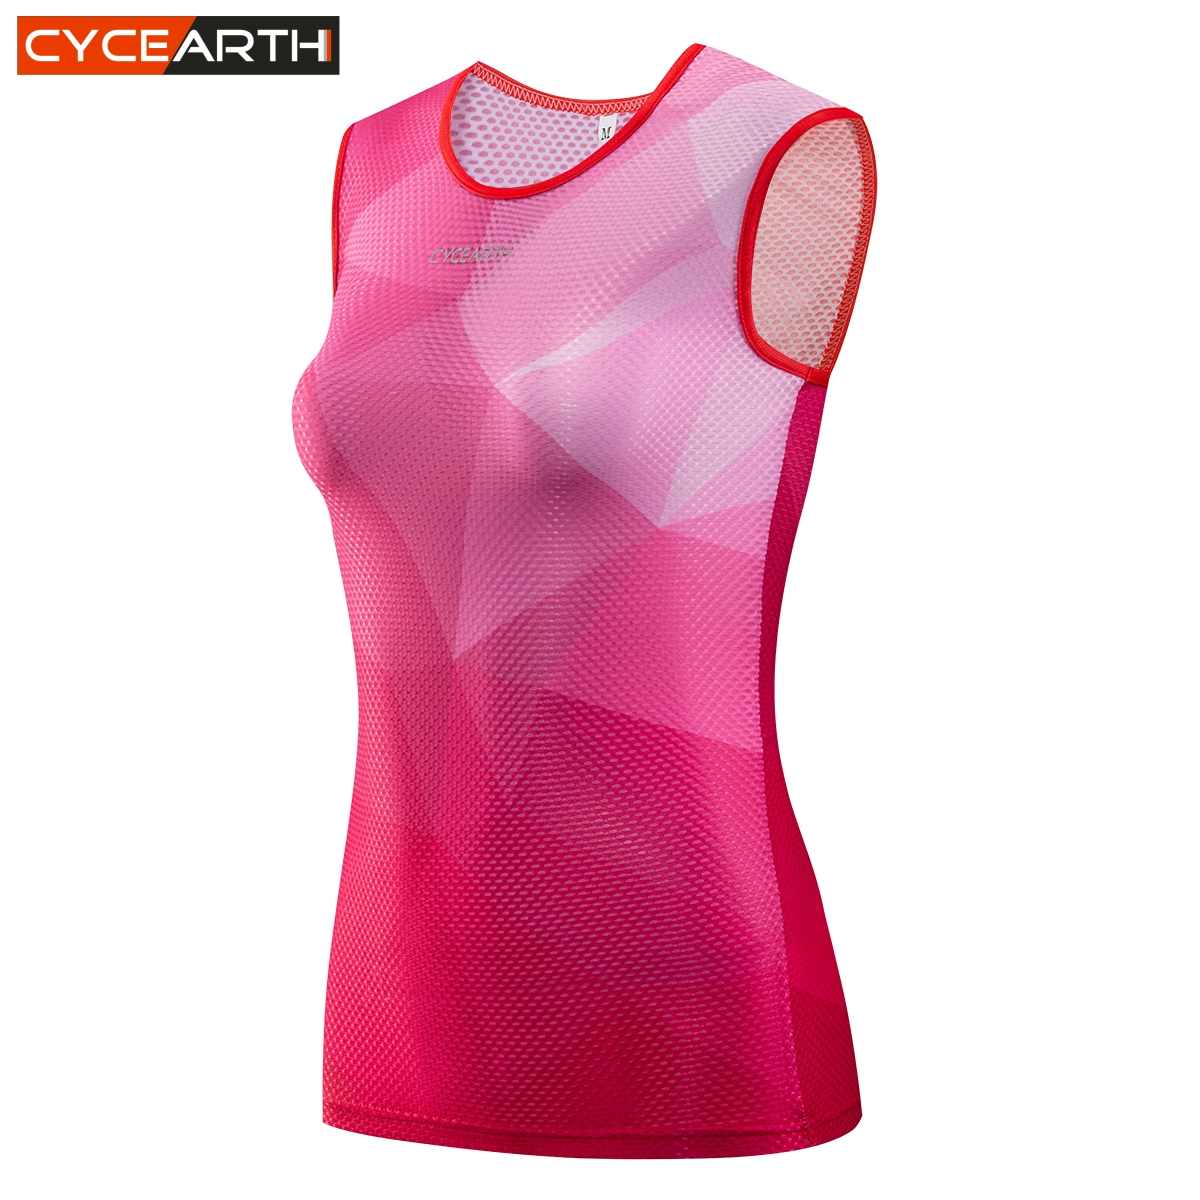 CYCEARTH 2018 Women Cycling Base Layer Jerseys Dry Mesh Sleeveless Clothing  Road MTB Bike Underwear Outdoor Sports Shirt 835016b7c